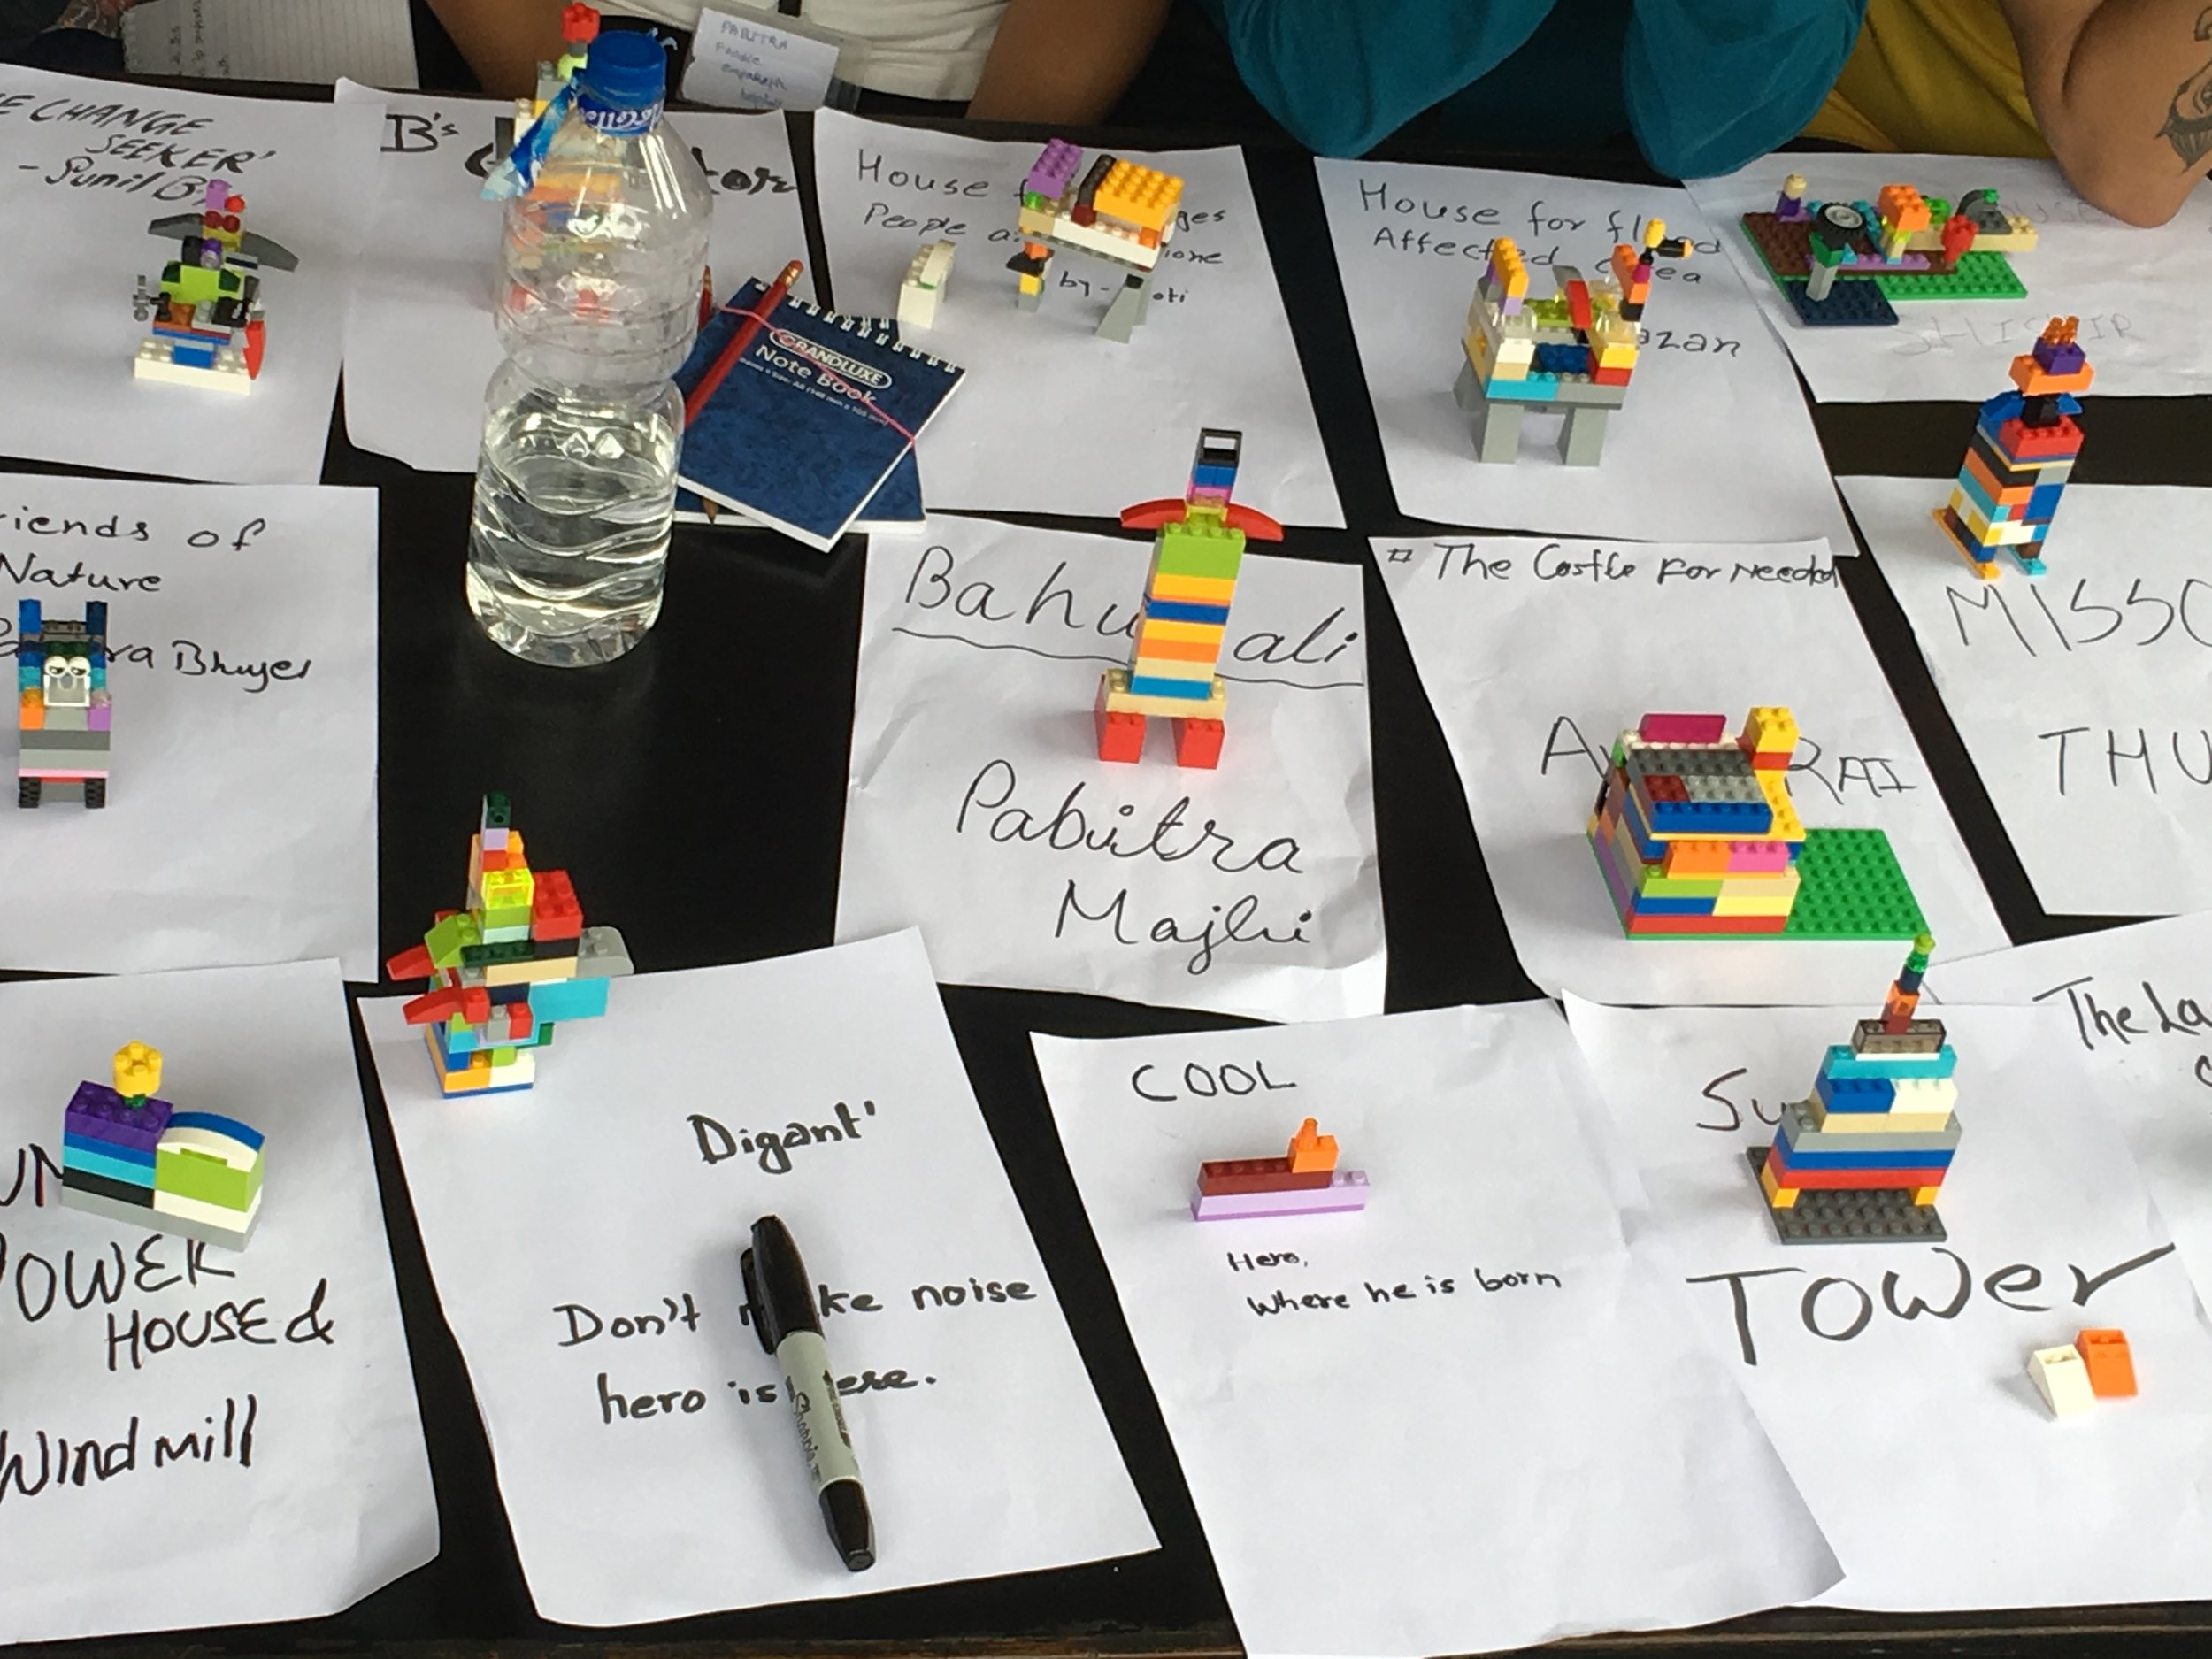 Hero Journey models made from Lego